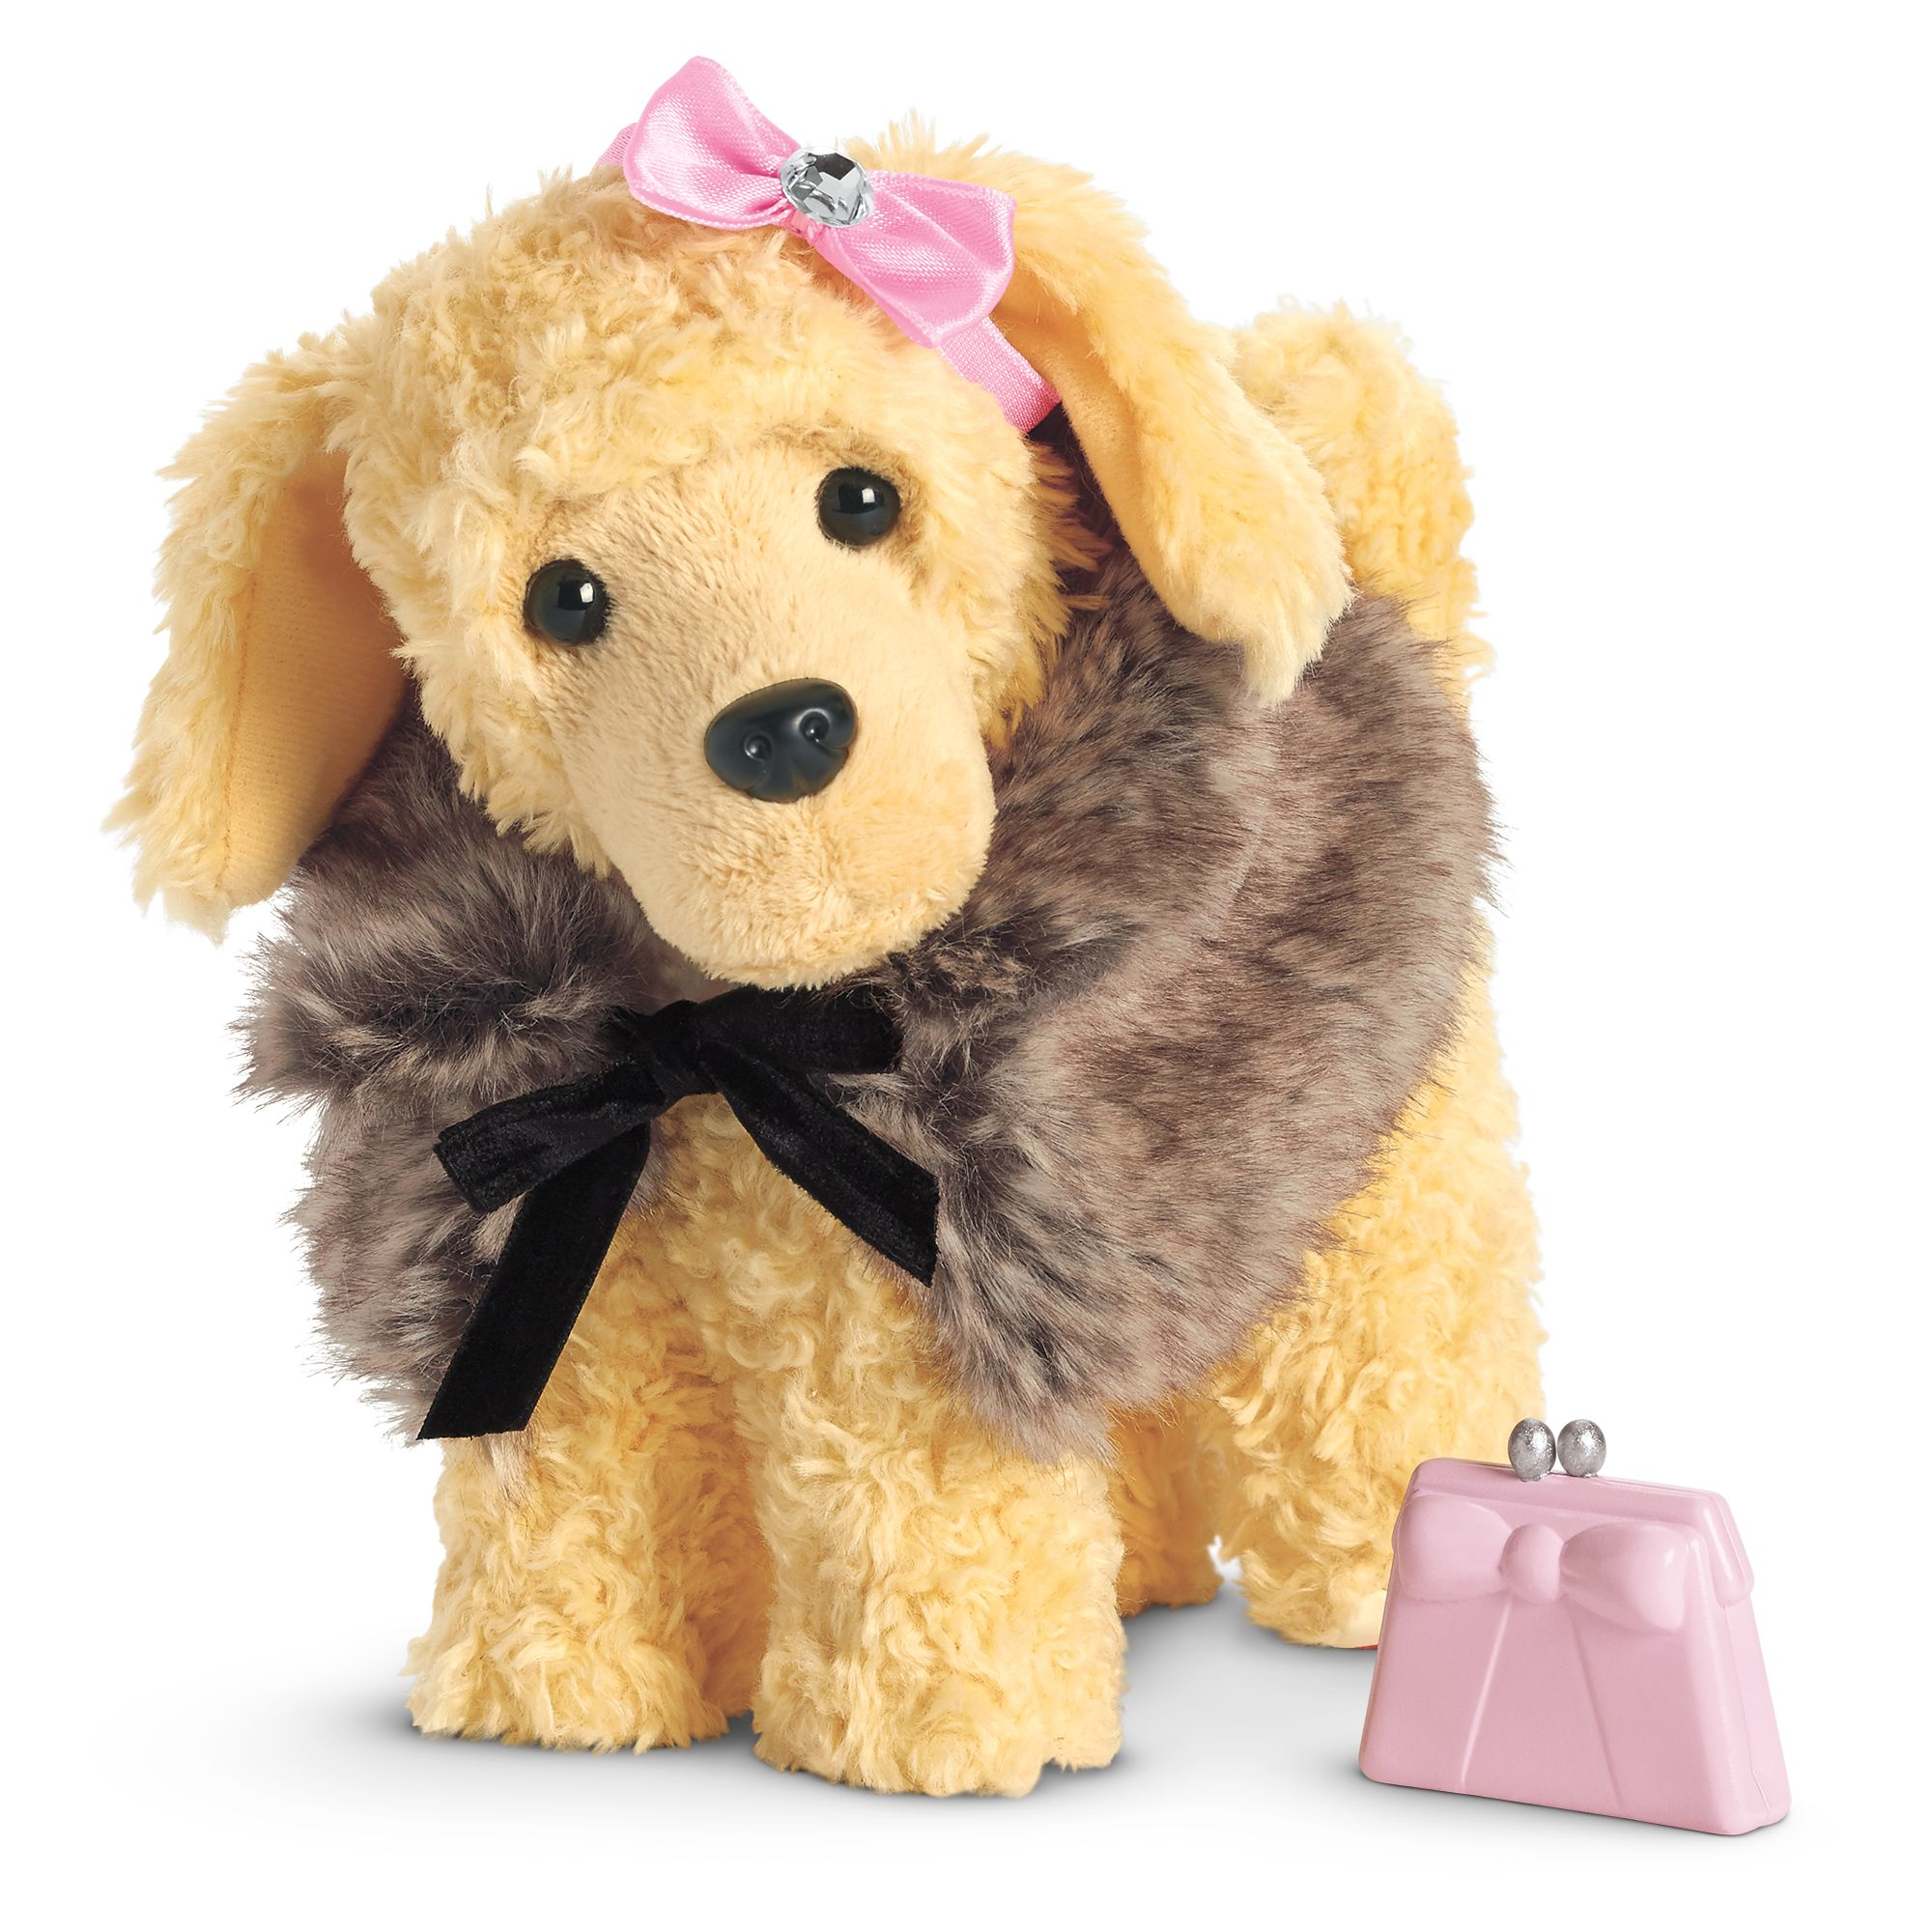 The Fancy Pet Outfit On Apricot Poodle Puppy